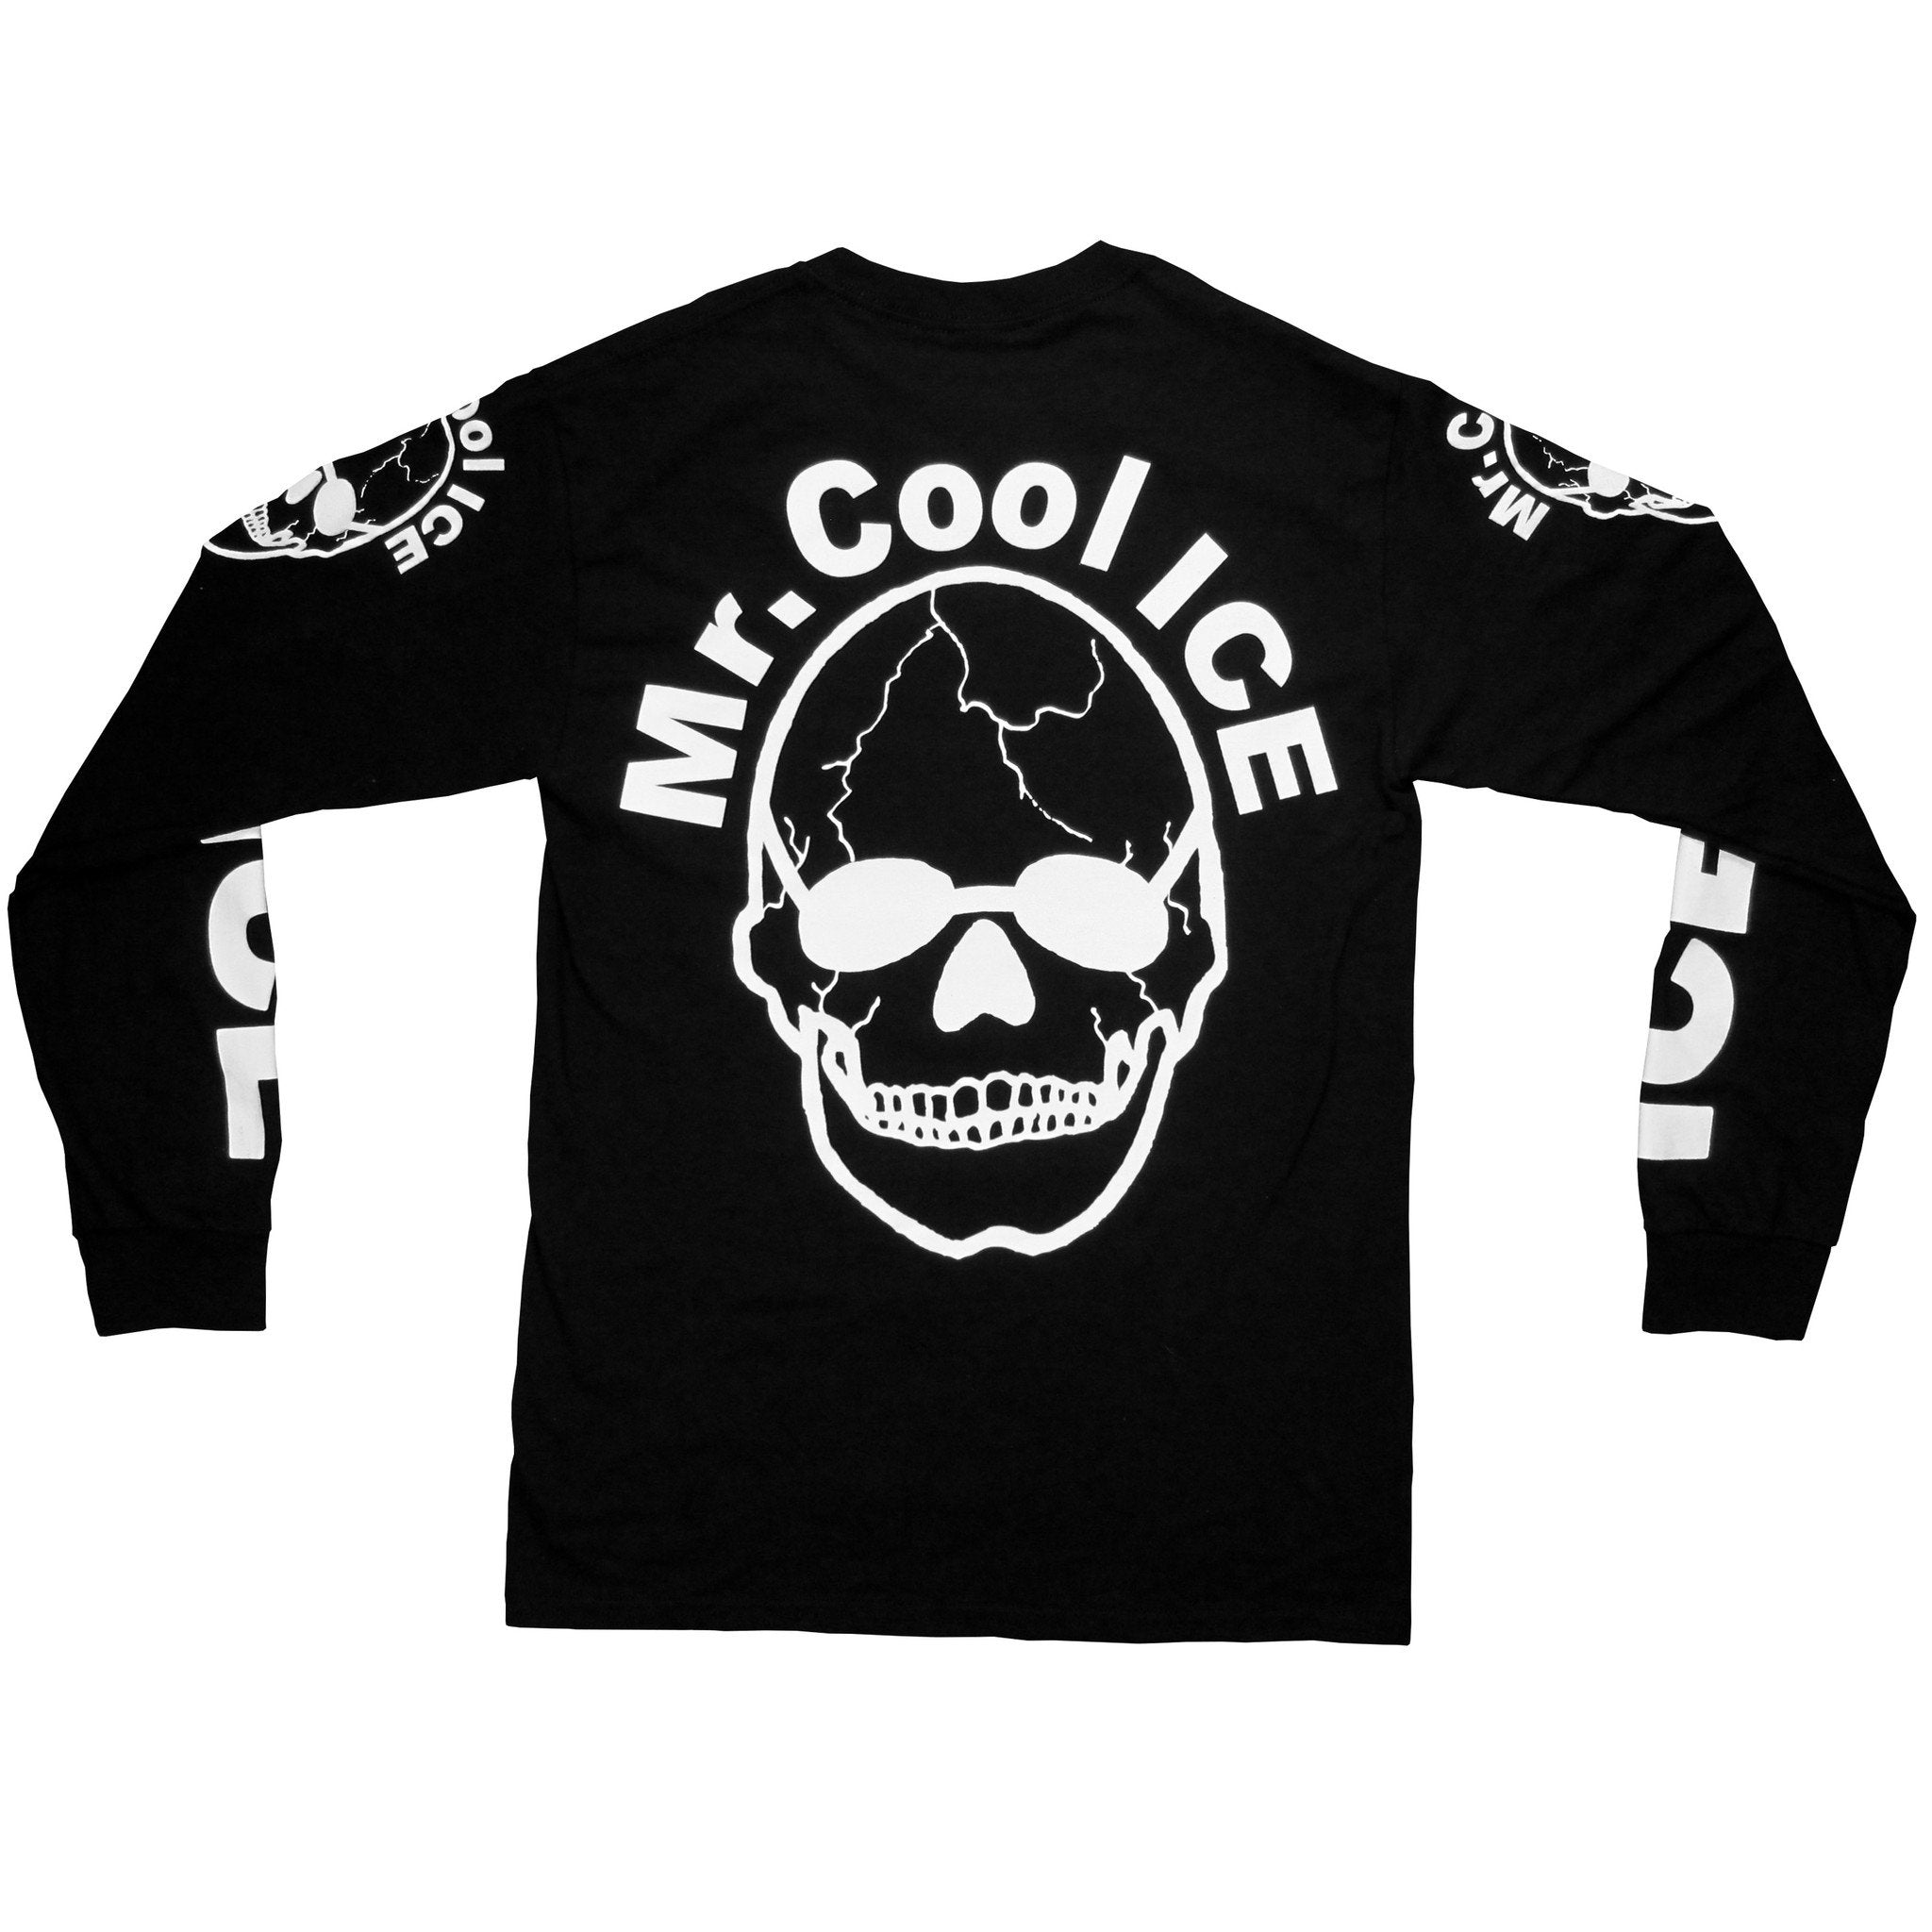 Mr. Cool Ice shirt by No Fun Press - back